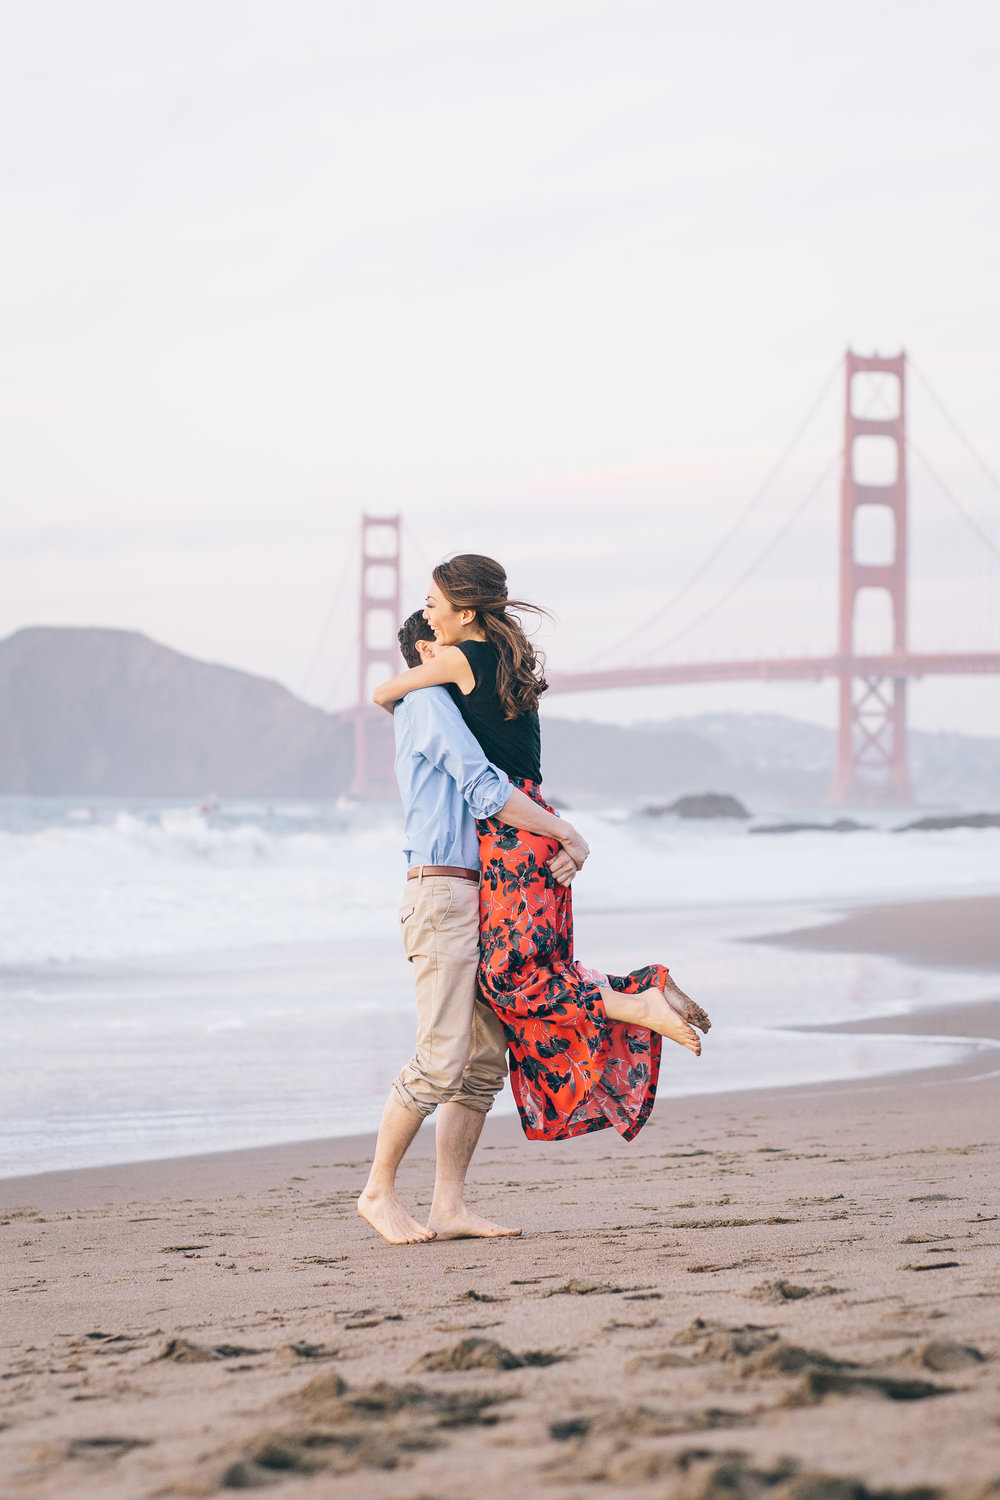 Best Engagement Photo Locations in San Francisco - Baker Beach Engagement Photos by JBJ Pictures (5).jpg